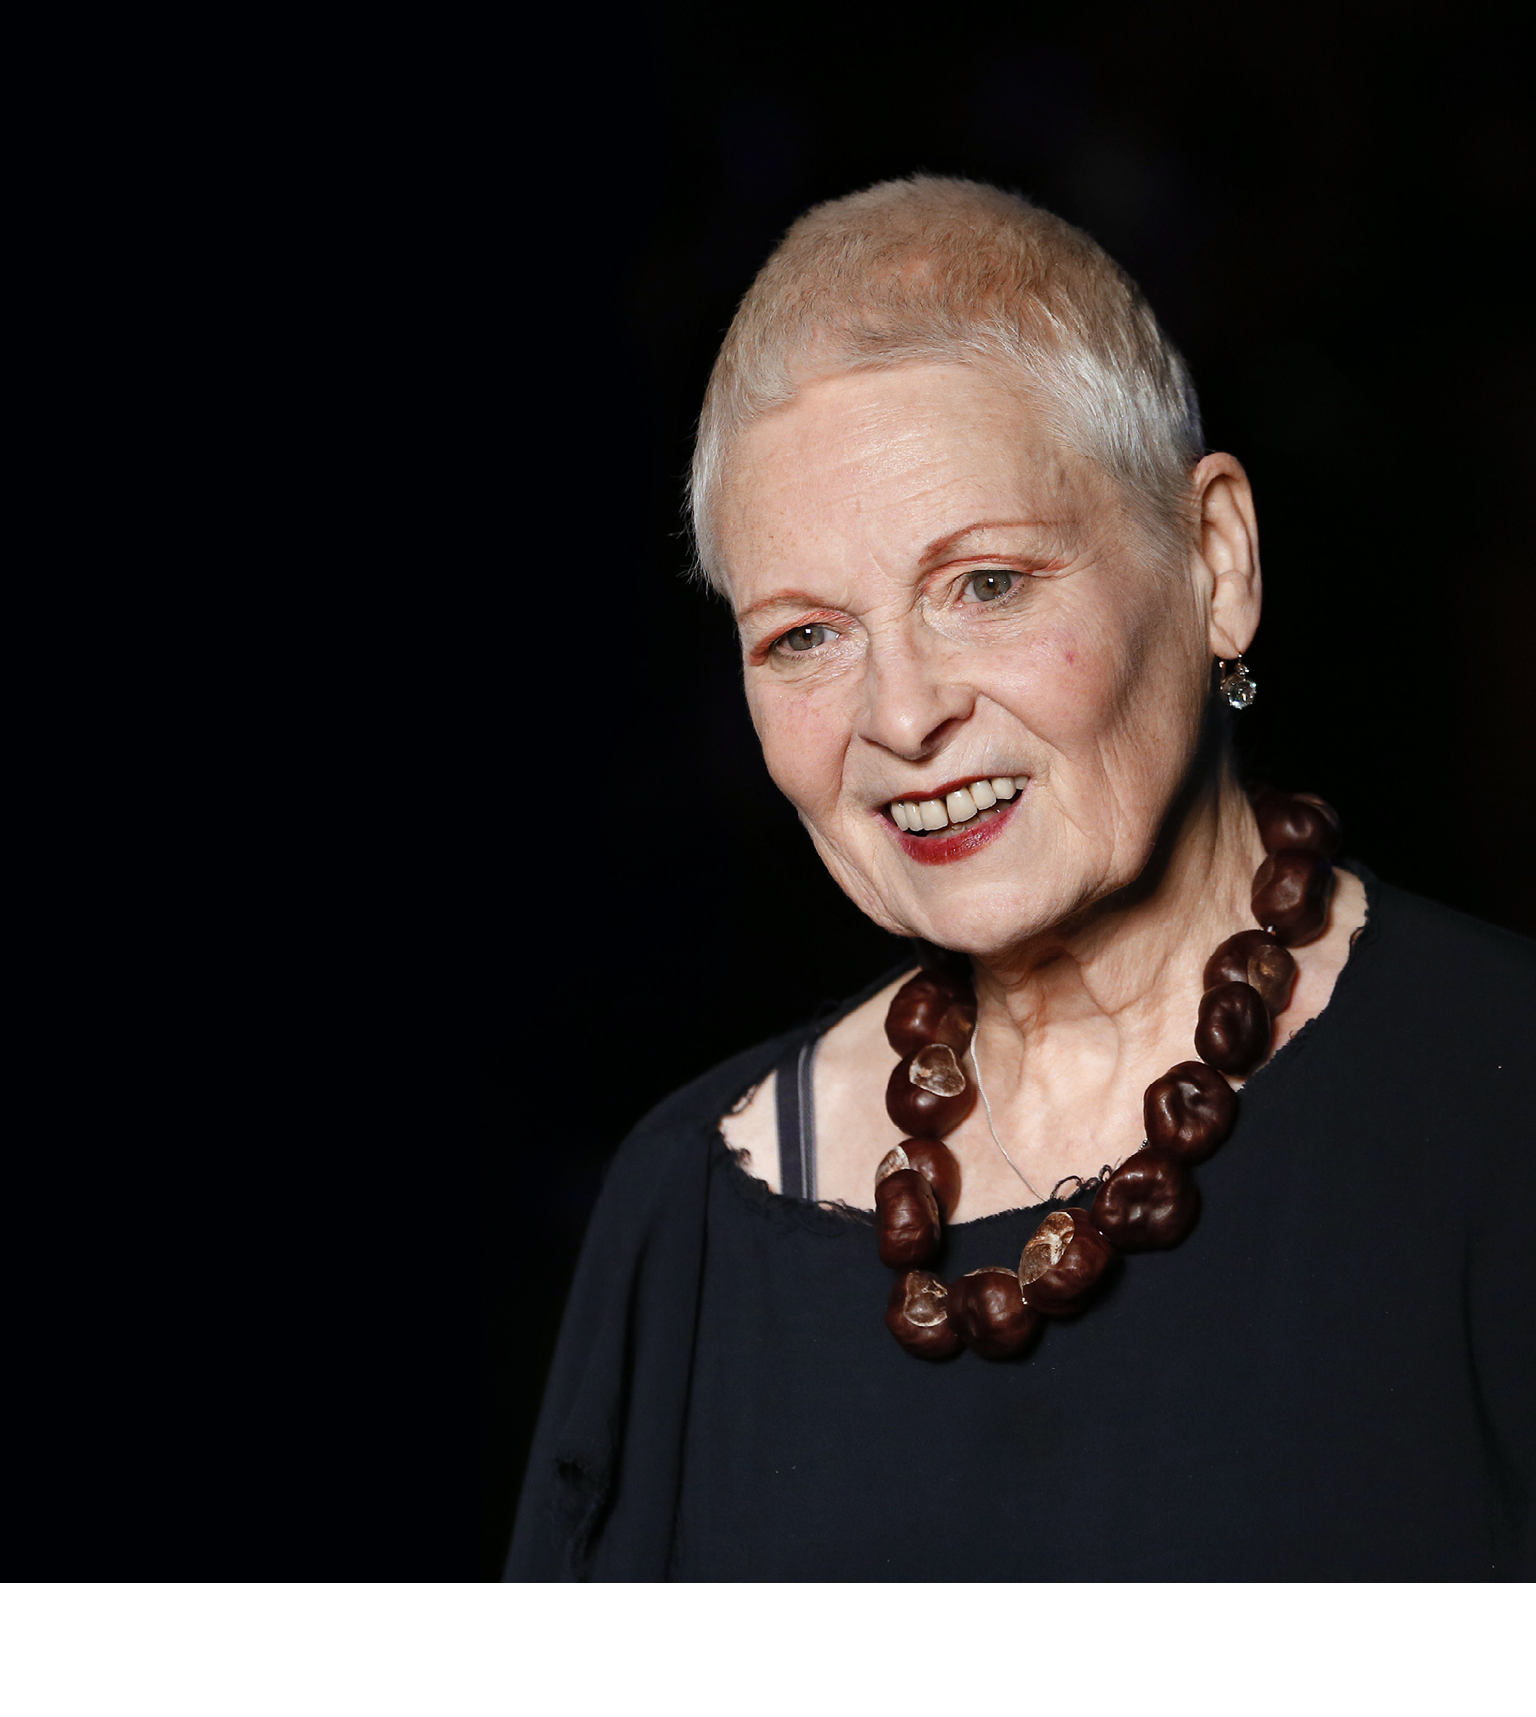 British designer Vivienne Westwood acknowledges the audience at the end of her 2015 Spring/Summer ready-to-wear collection fashion show, on September 27, 2014 in Paris. AFP PHOTO / PATRICK KOVARIK